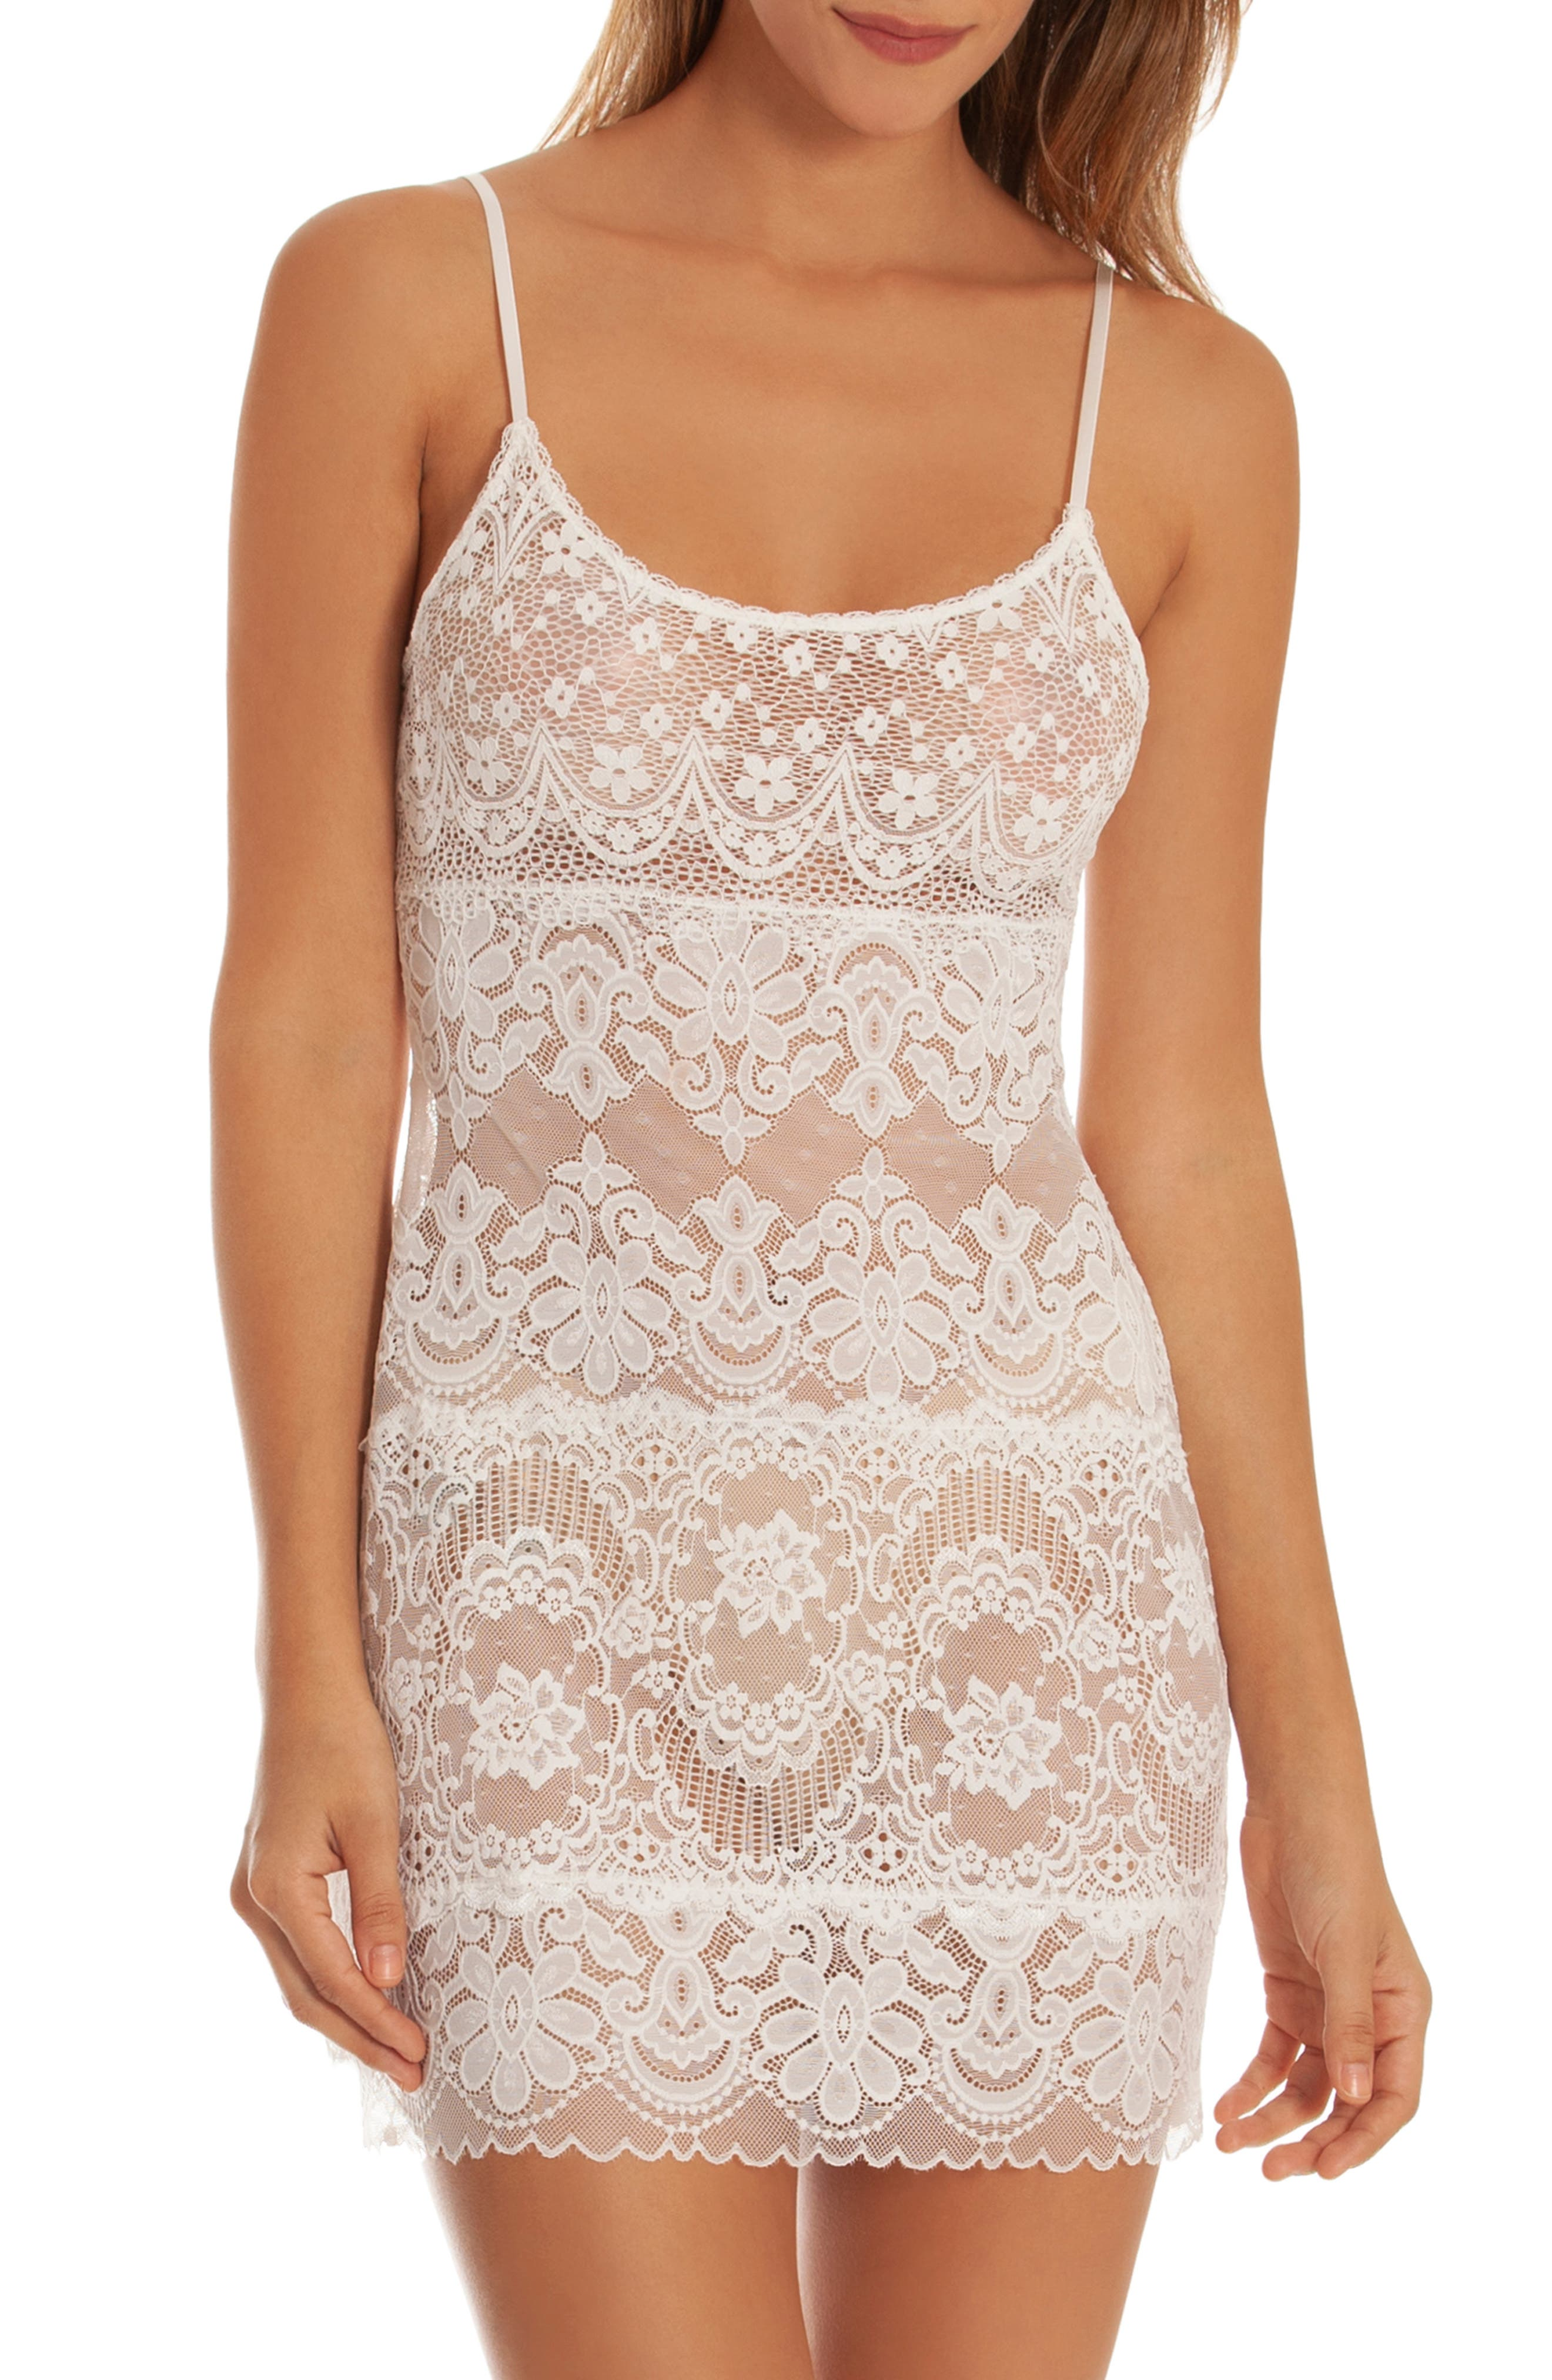 IN BLOOM BY JONQUIL, Lace Chemise, Main thumbnail 1, color, IVORY